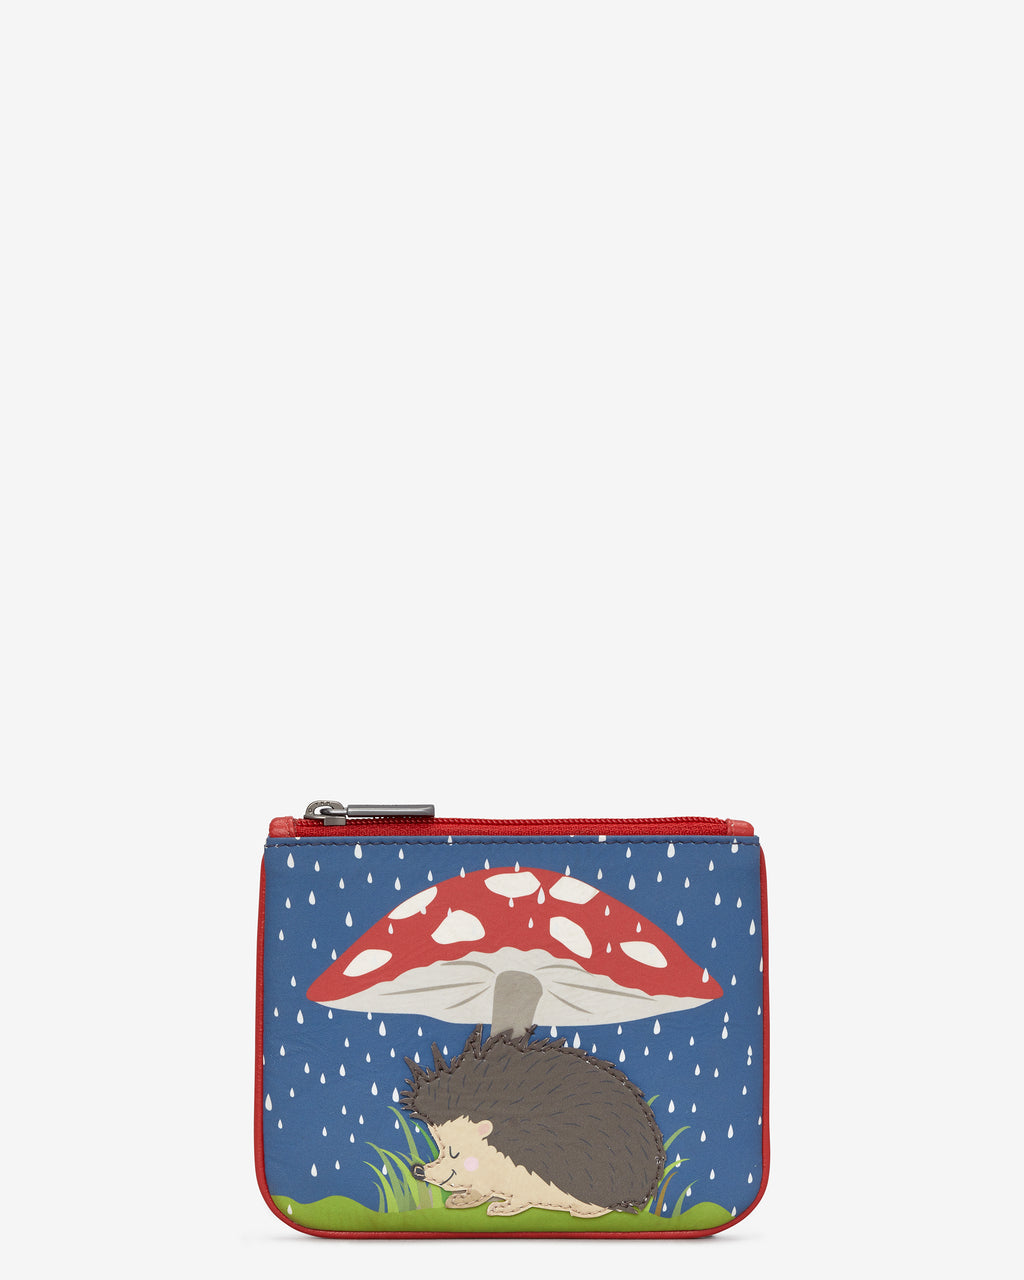 Y By Yoshi Leather Zip Top Hattie The Hedgehog Purse